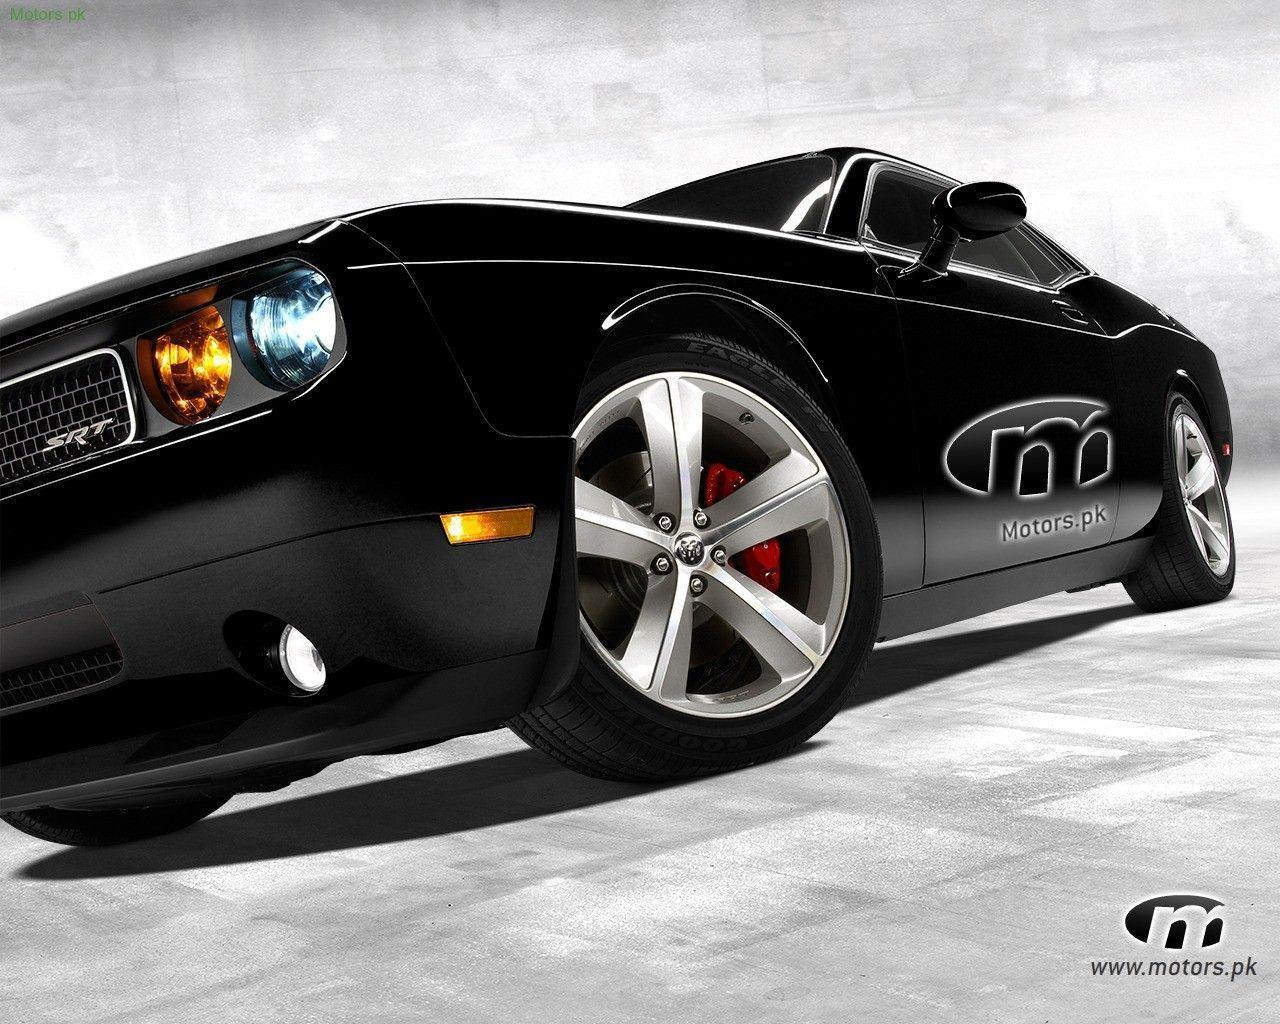 Wallpapers Of Muscle Cars 21855 Wallpapers | autocarpict.